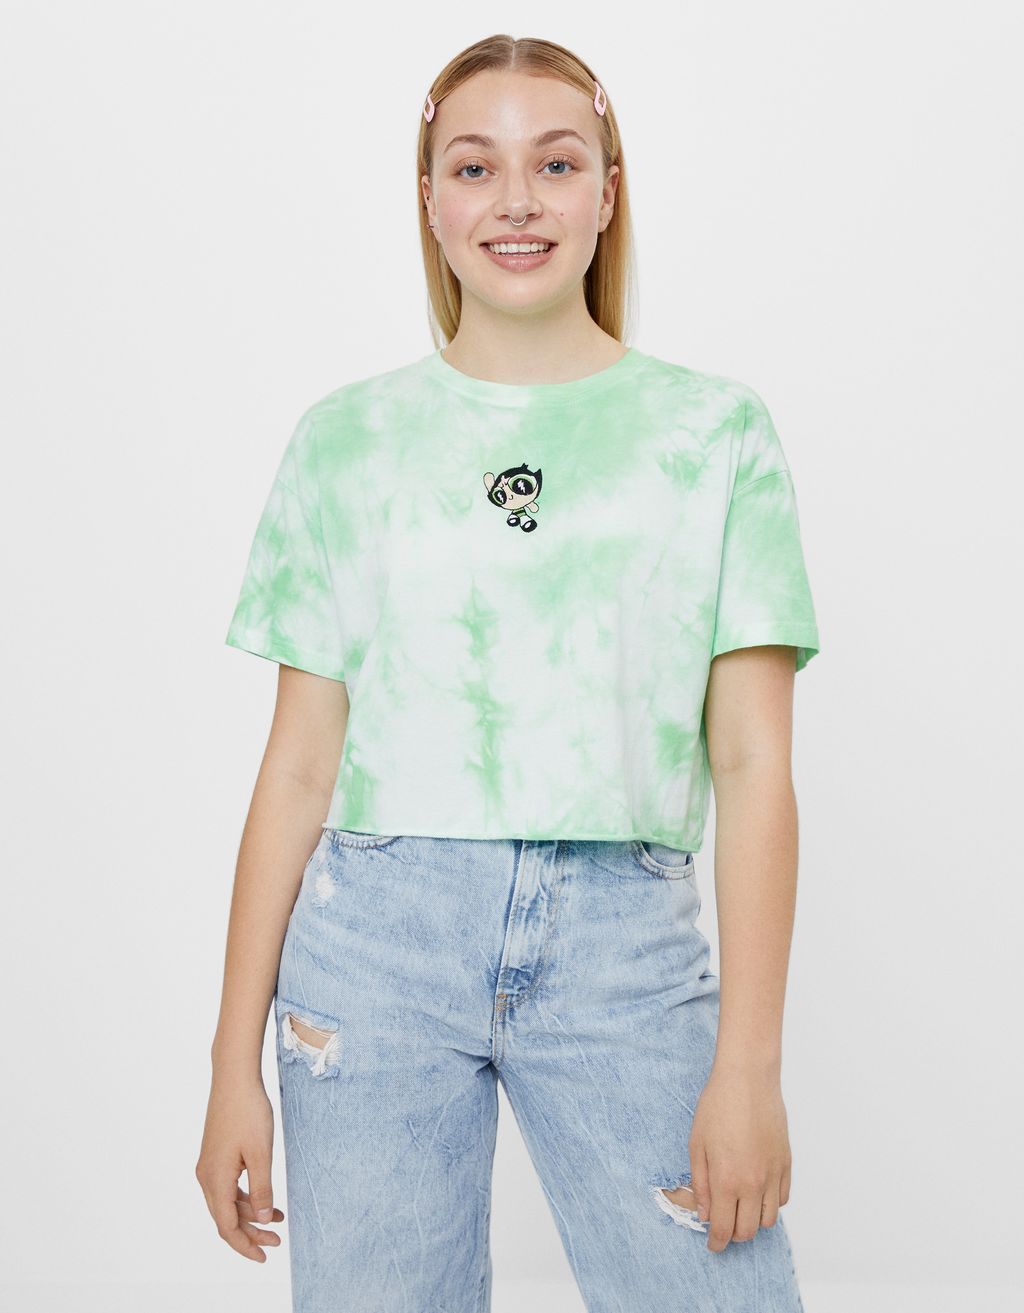 Powerpuff Girls T-shirt